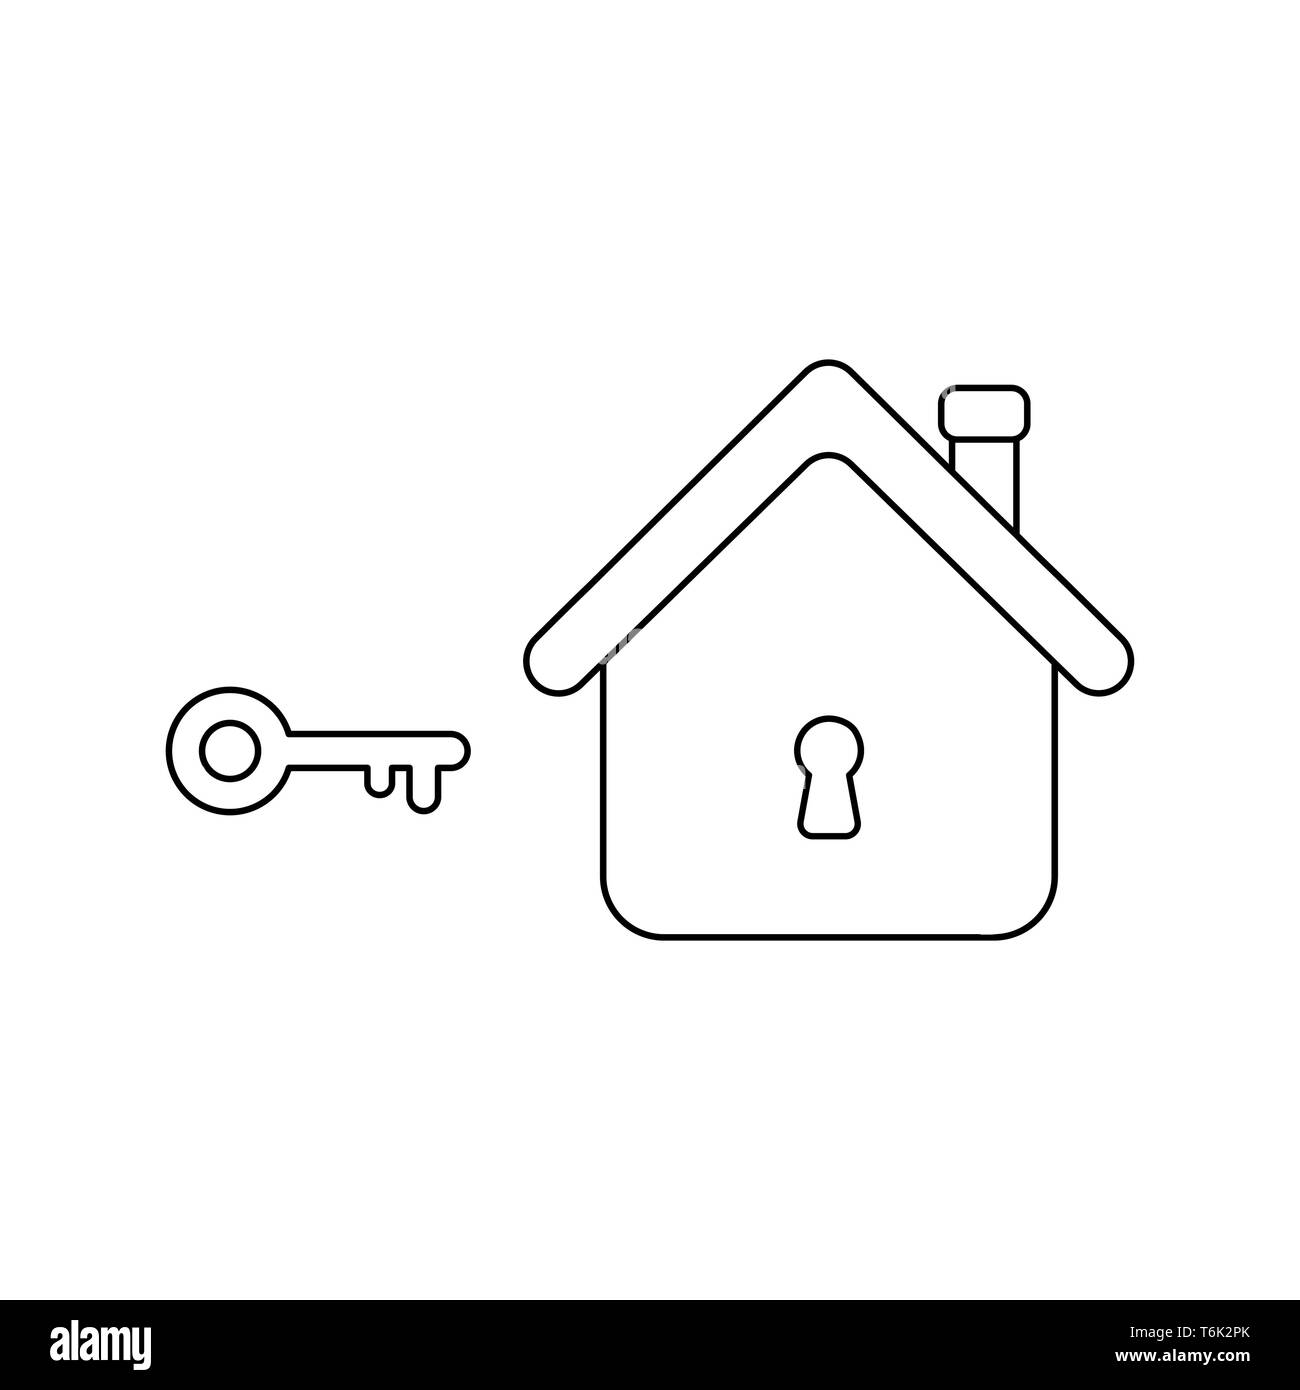 Vector icon concept of key lock or unlock house keyhole. Black outlines. - Stock Image